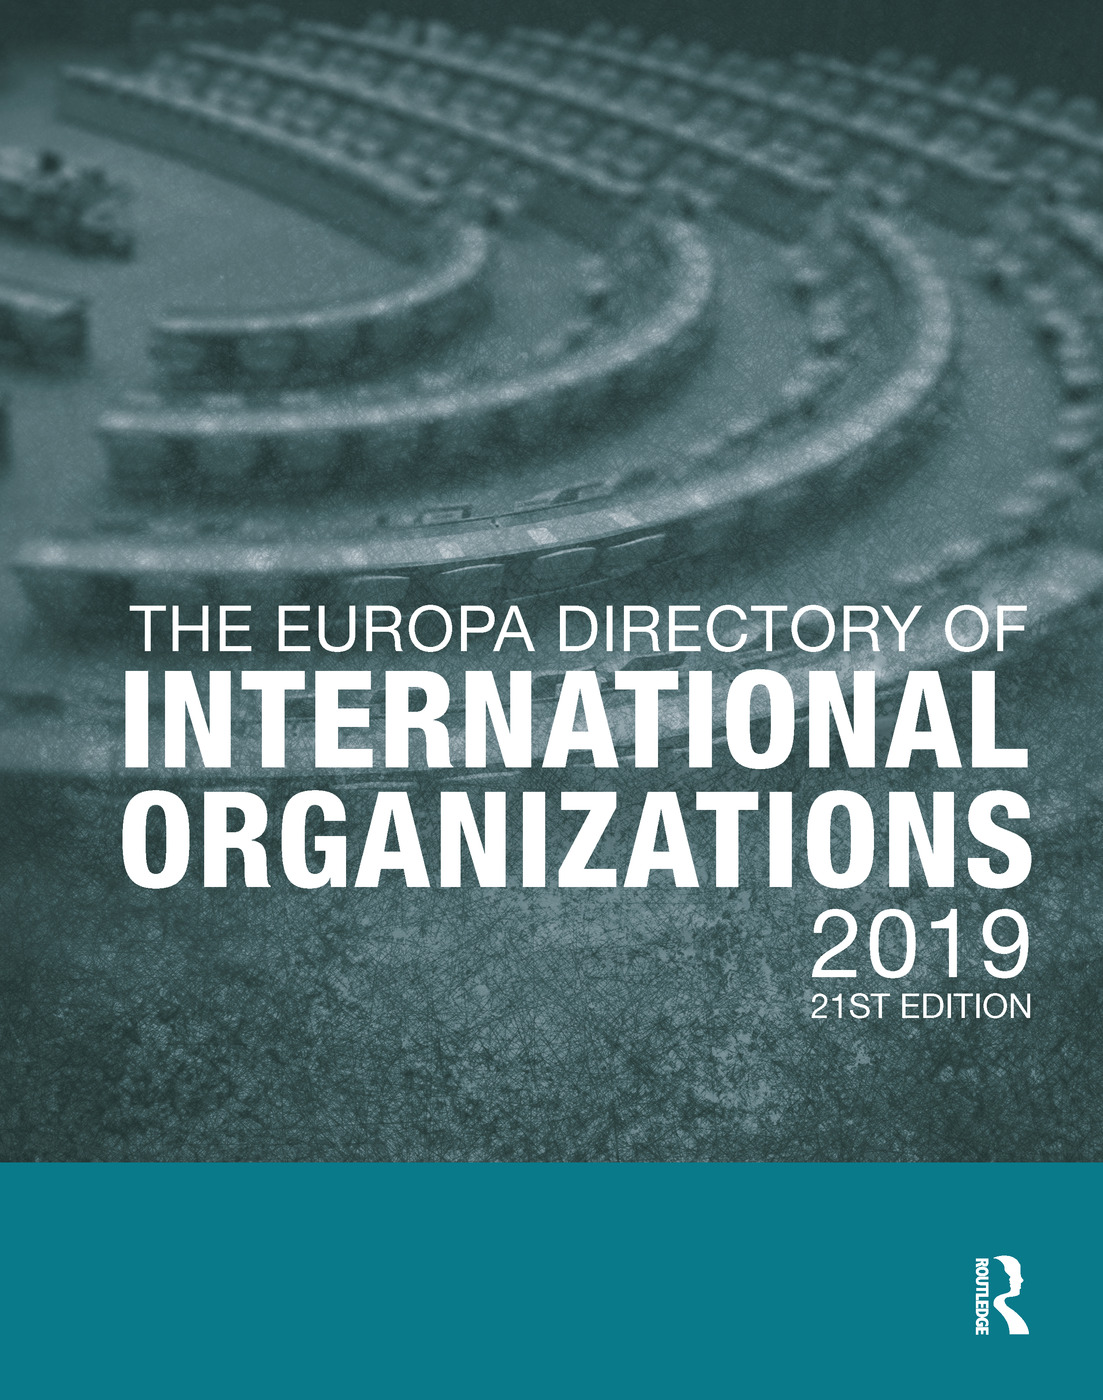 The Europa Directory of International Organizations 2019 book cover